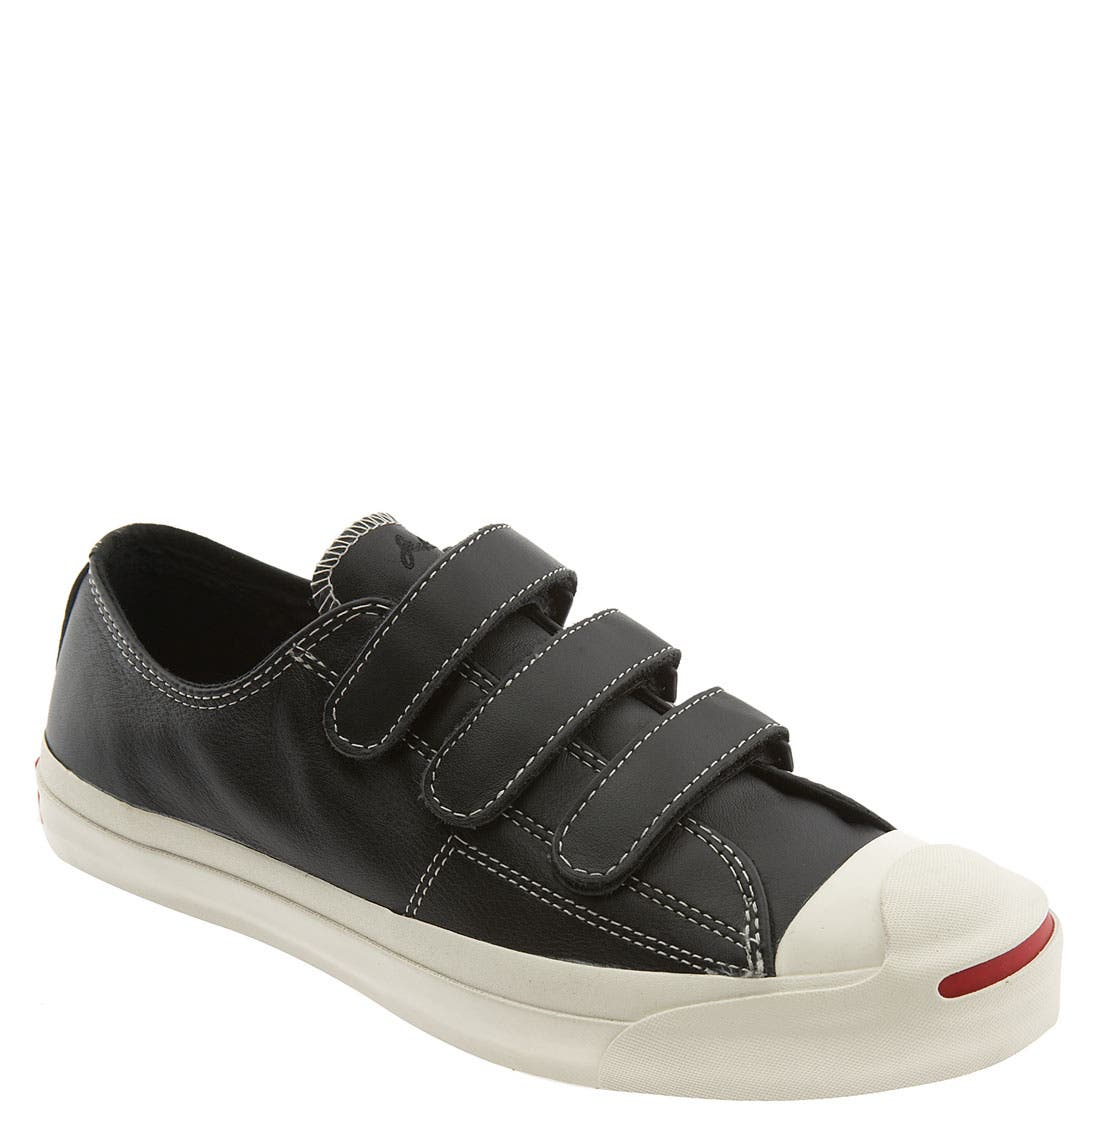 CONVERSE 'Jack Purcell' Velcro<sup>®</sup> Sneaker, Main, color, 001